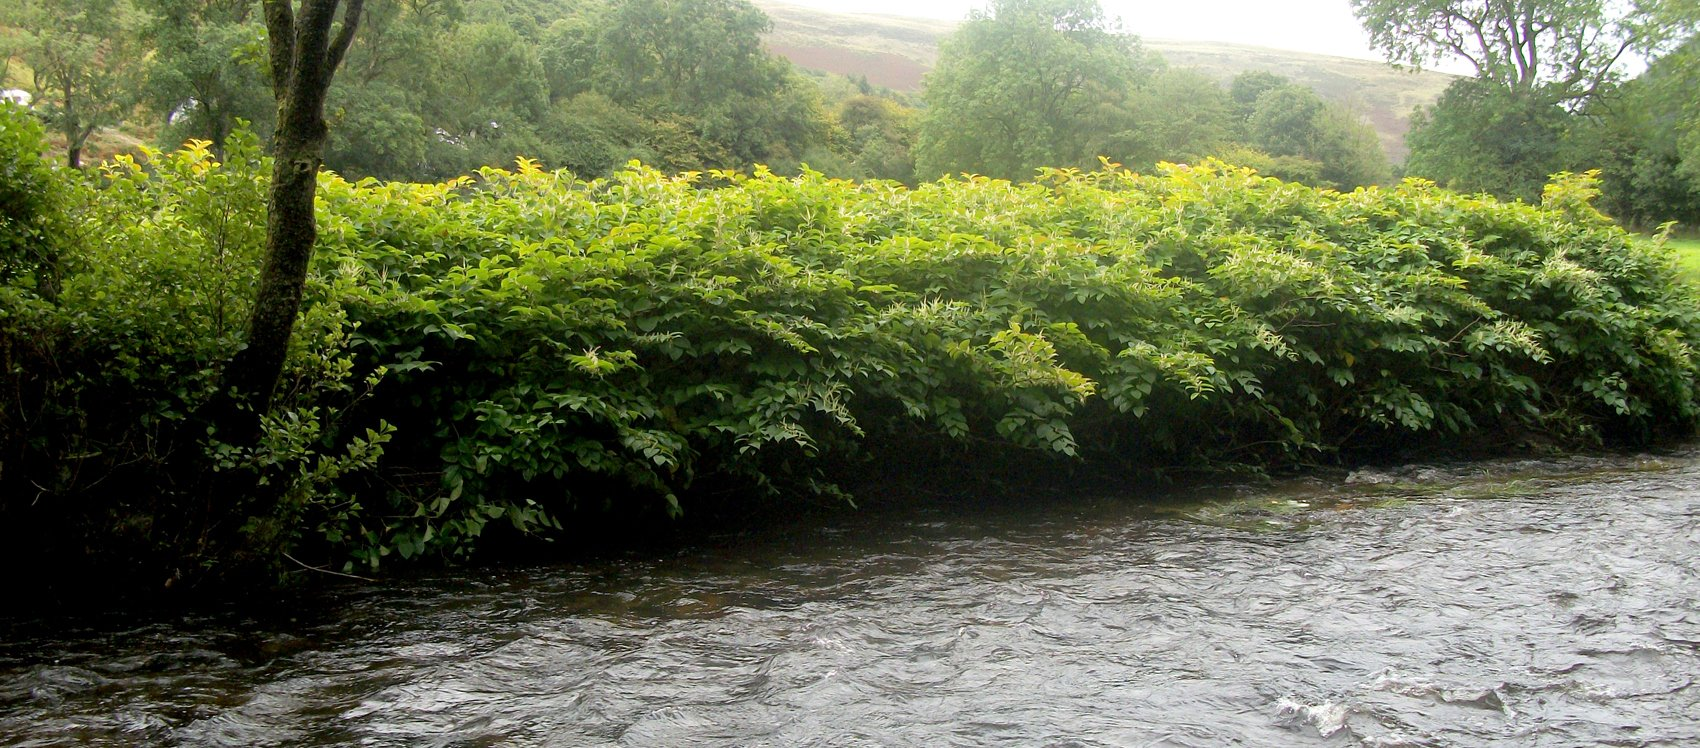 Japanese Knotweed (Fallopia japonica) on riverbank